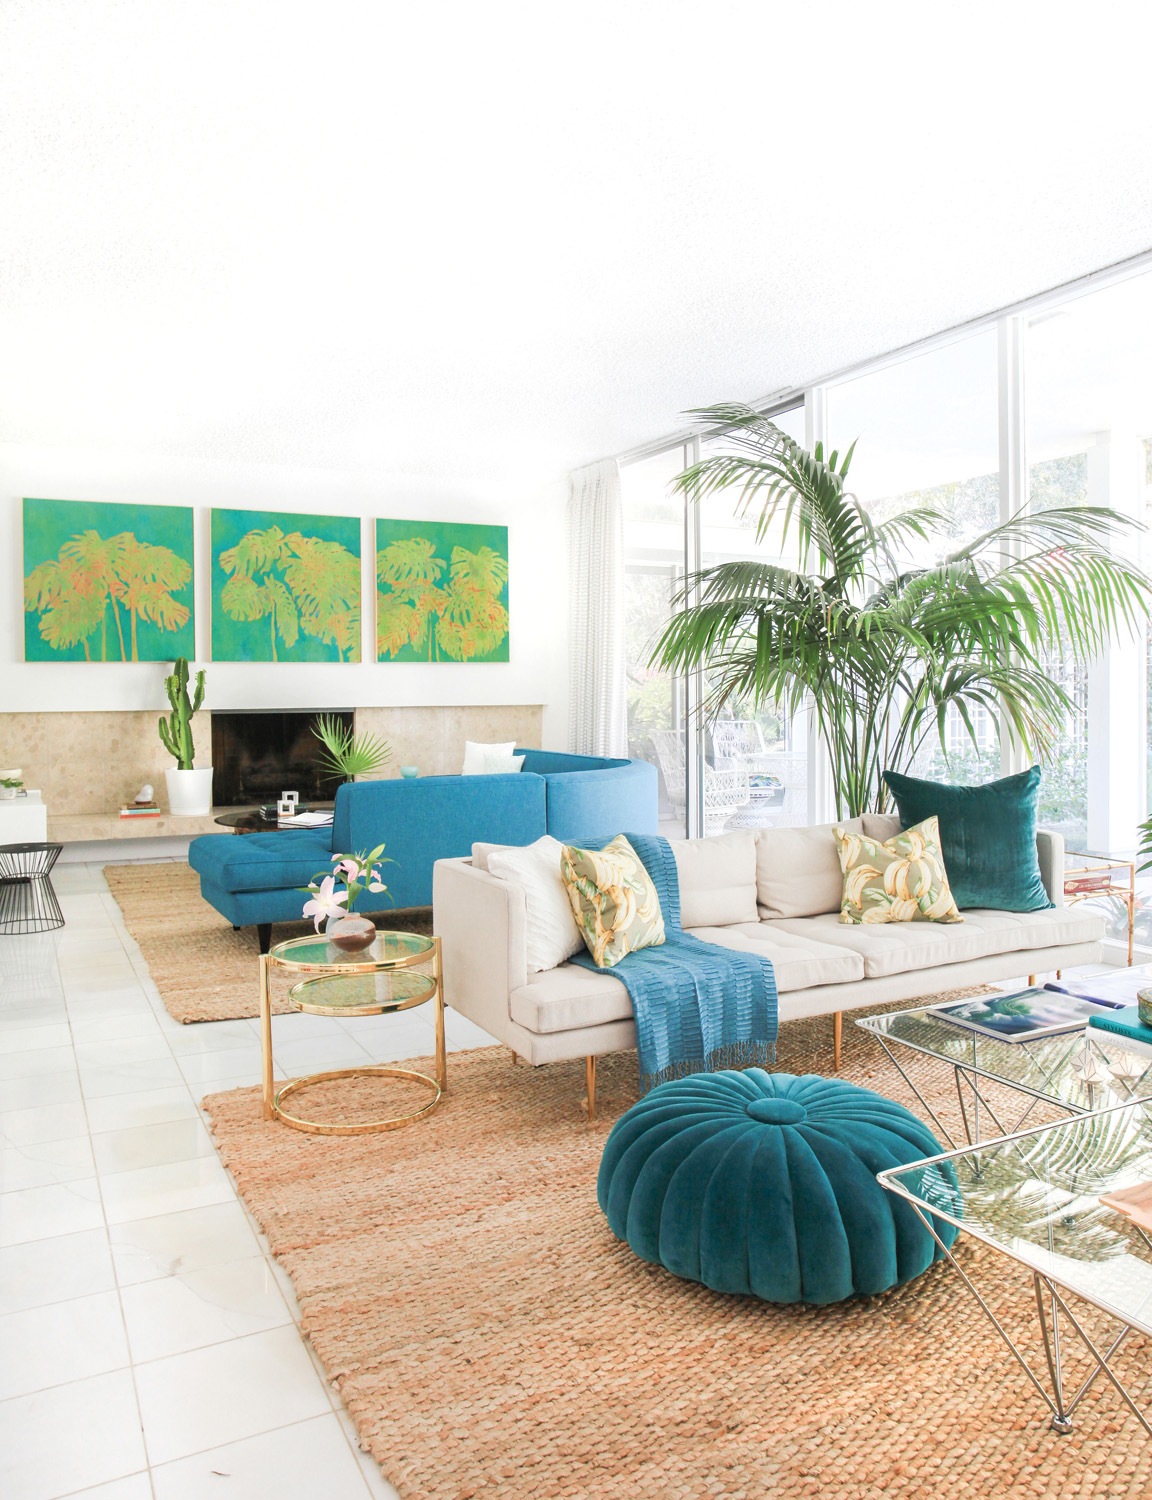 Greenery indoors brings the outside in